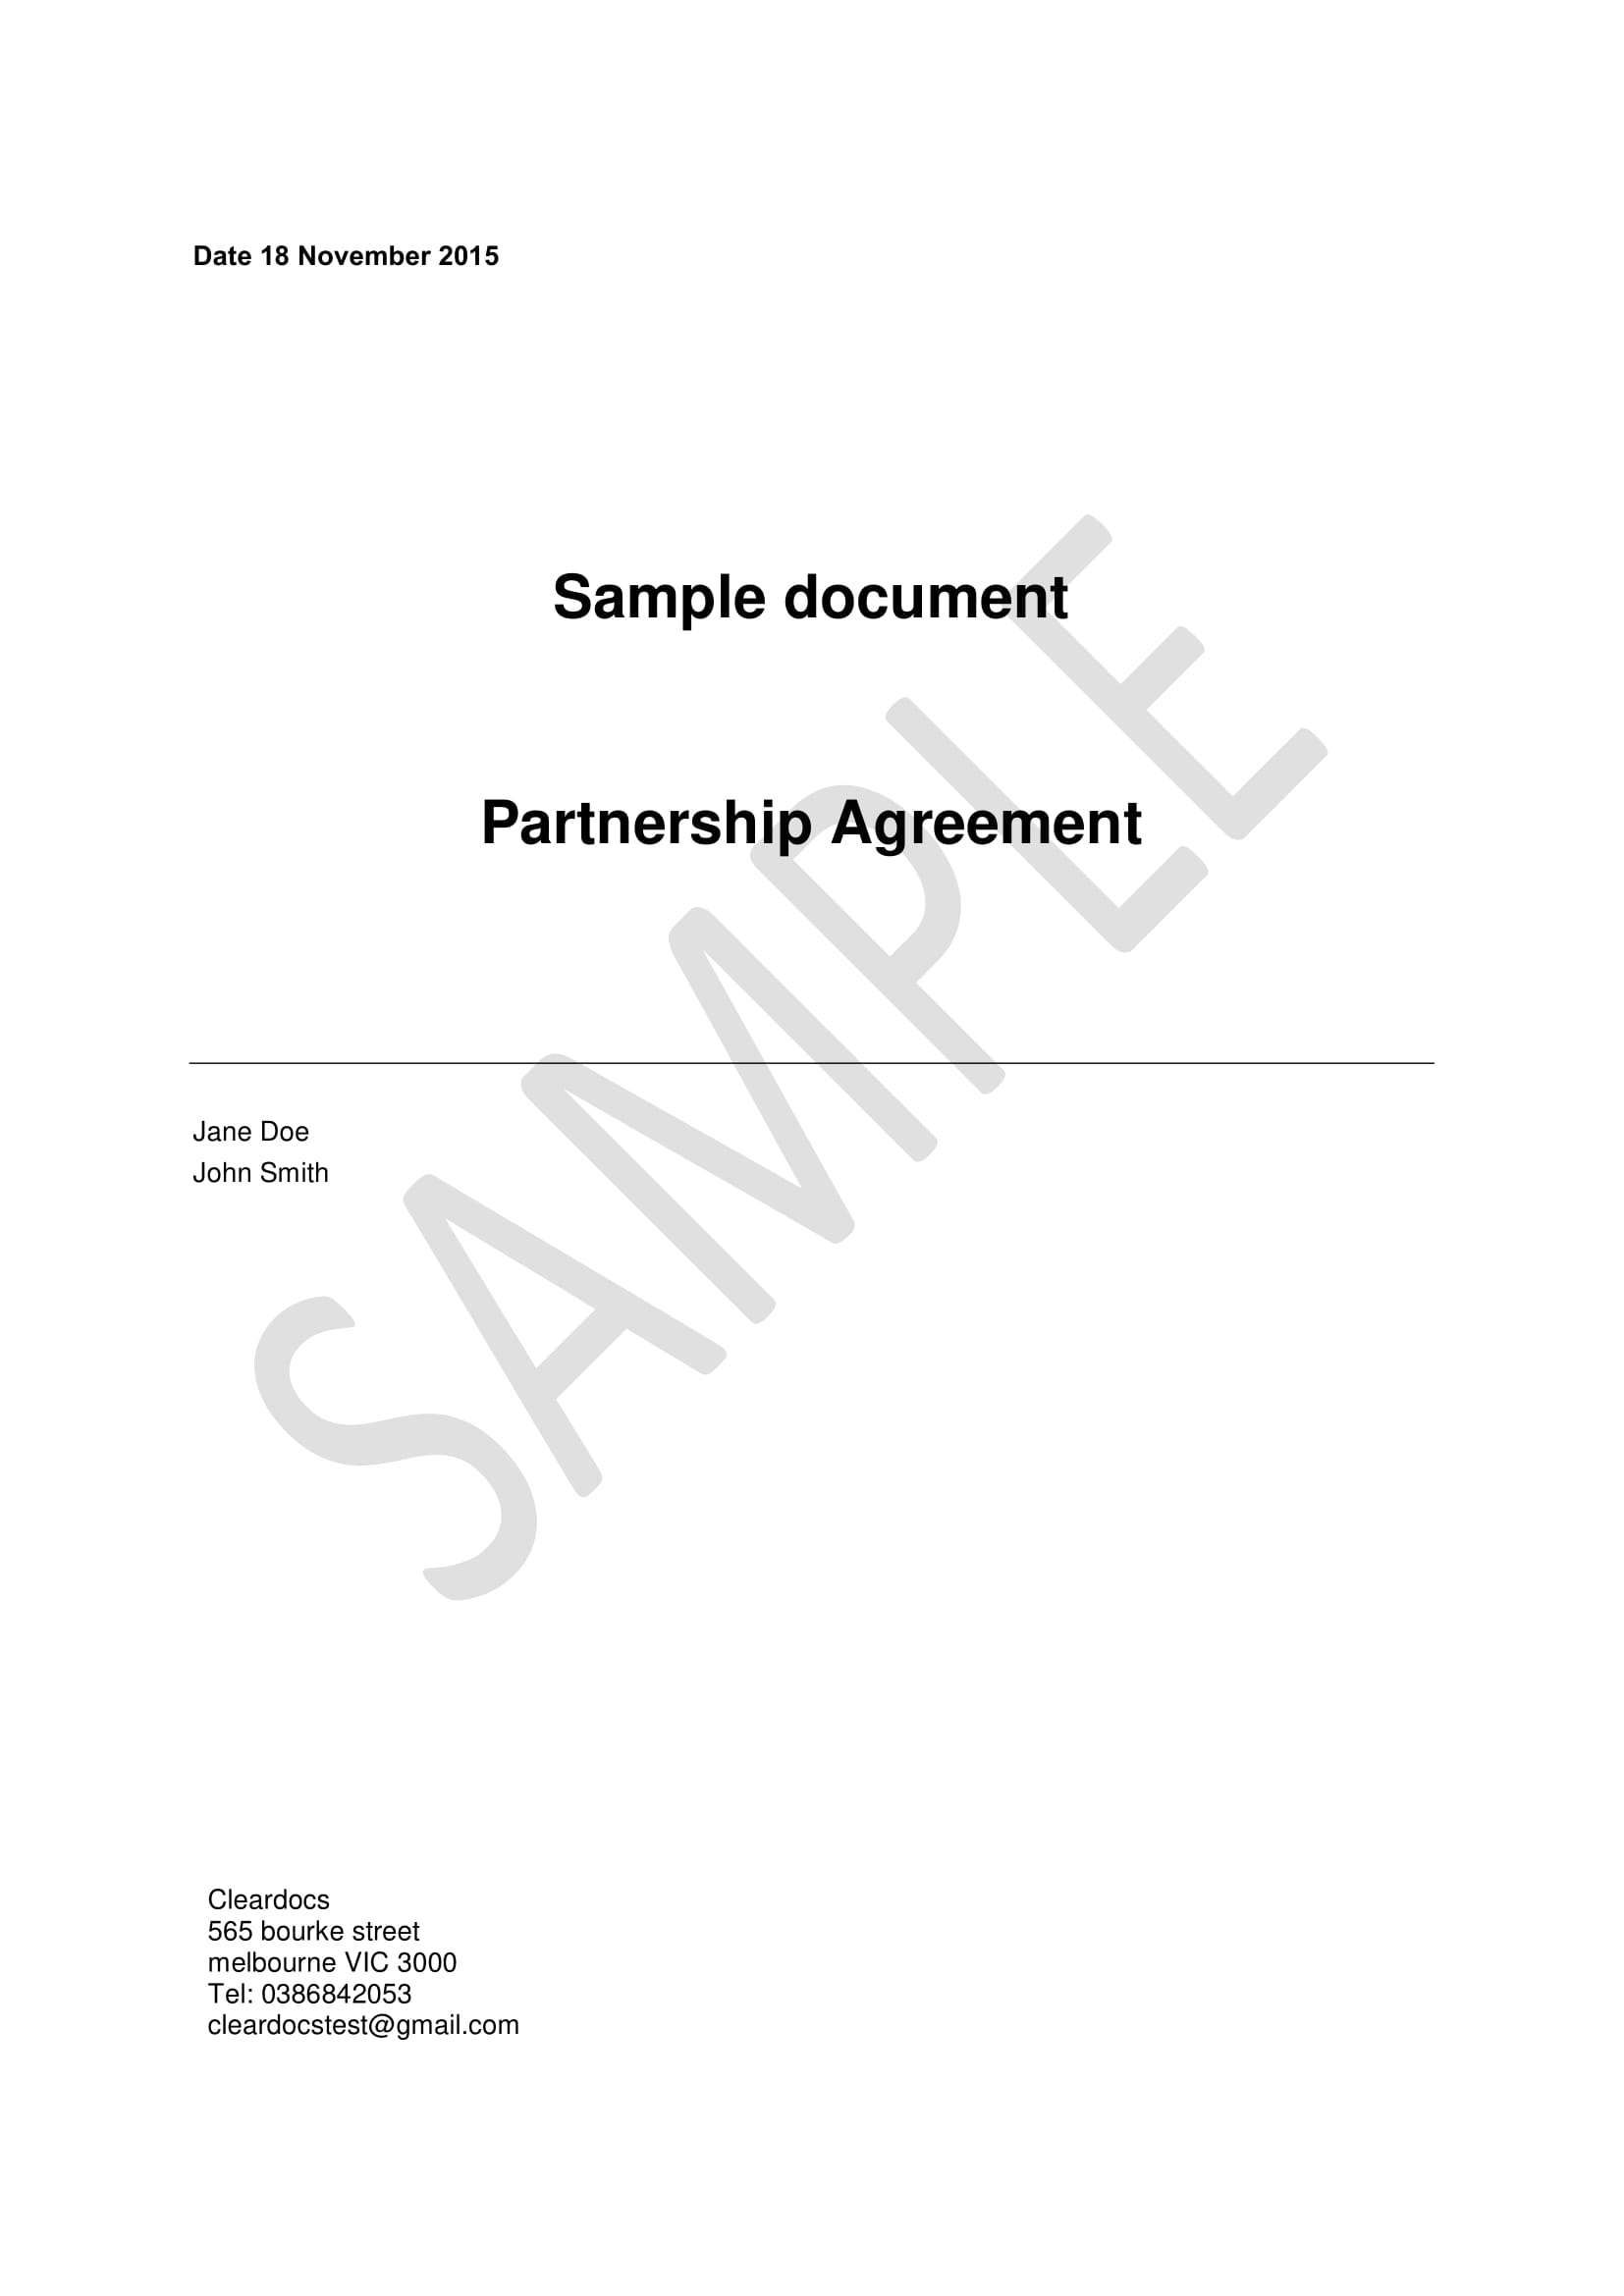 detailed partnership agreement example2